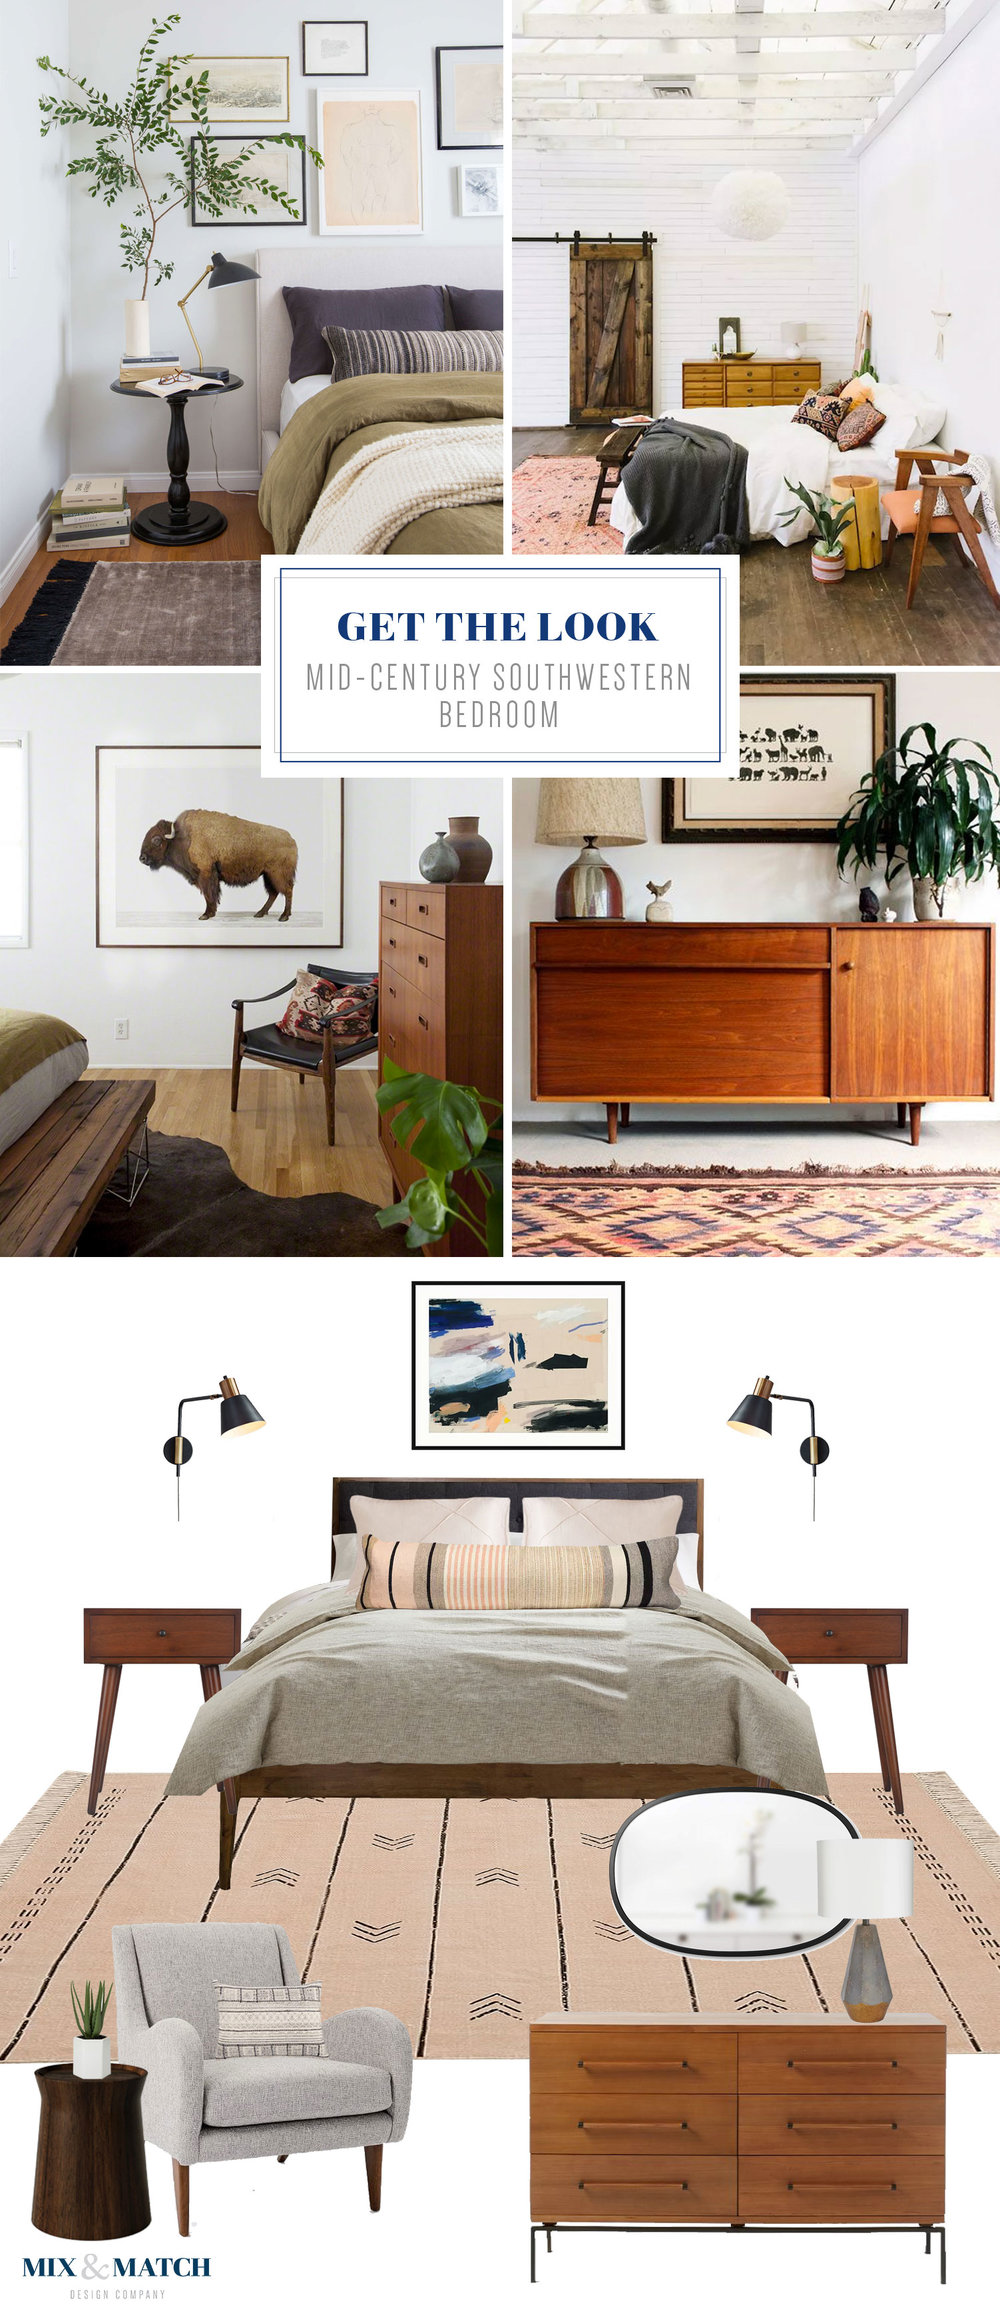 Get the look of this mid-century southwestern style bedroom on the Mix & Match blog! // warm colors in bedroom, mid-century modern bedroom, tribal bedroom